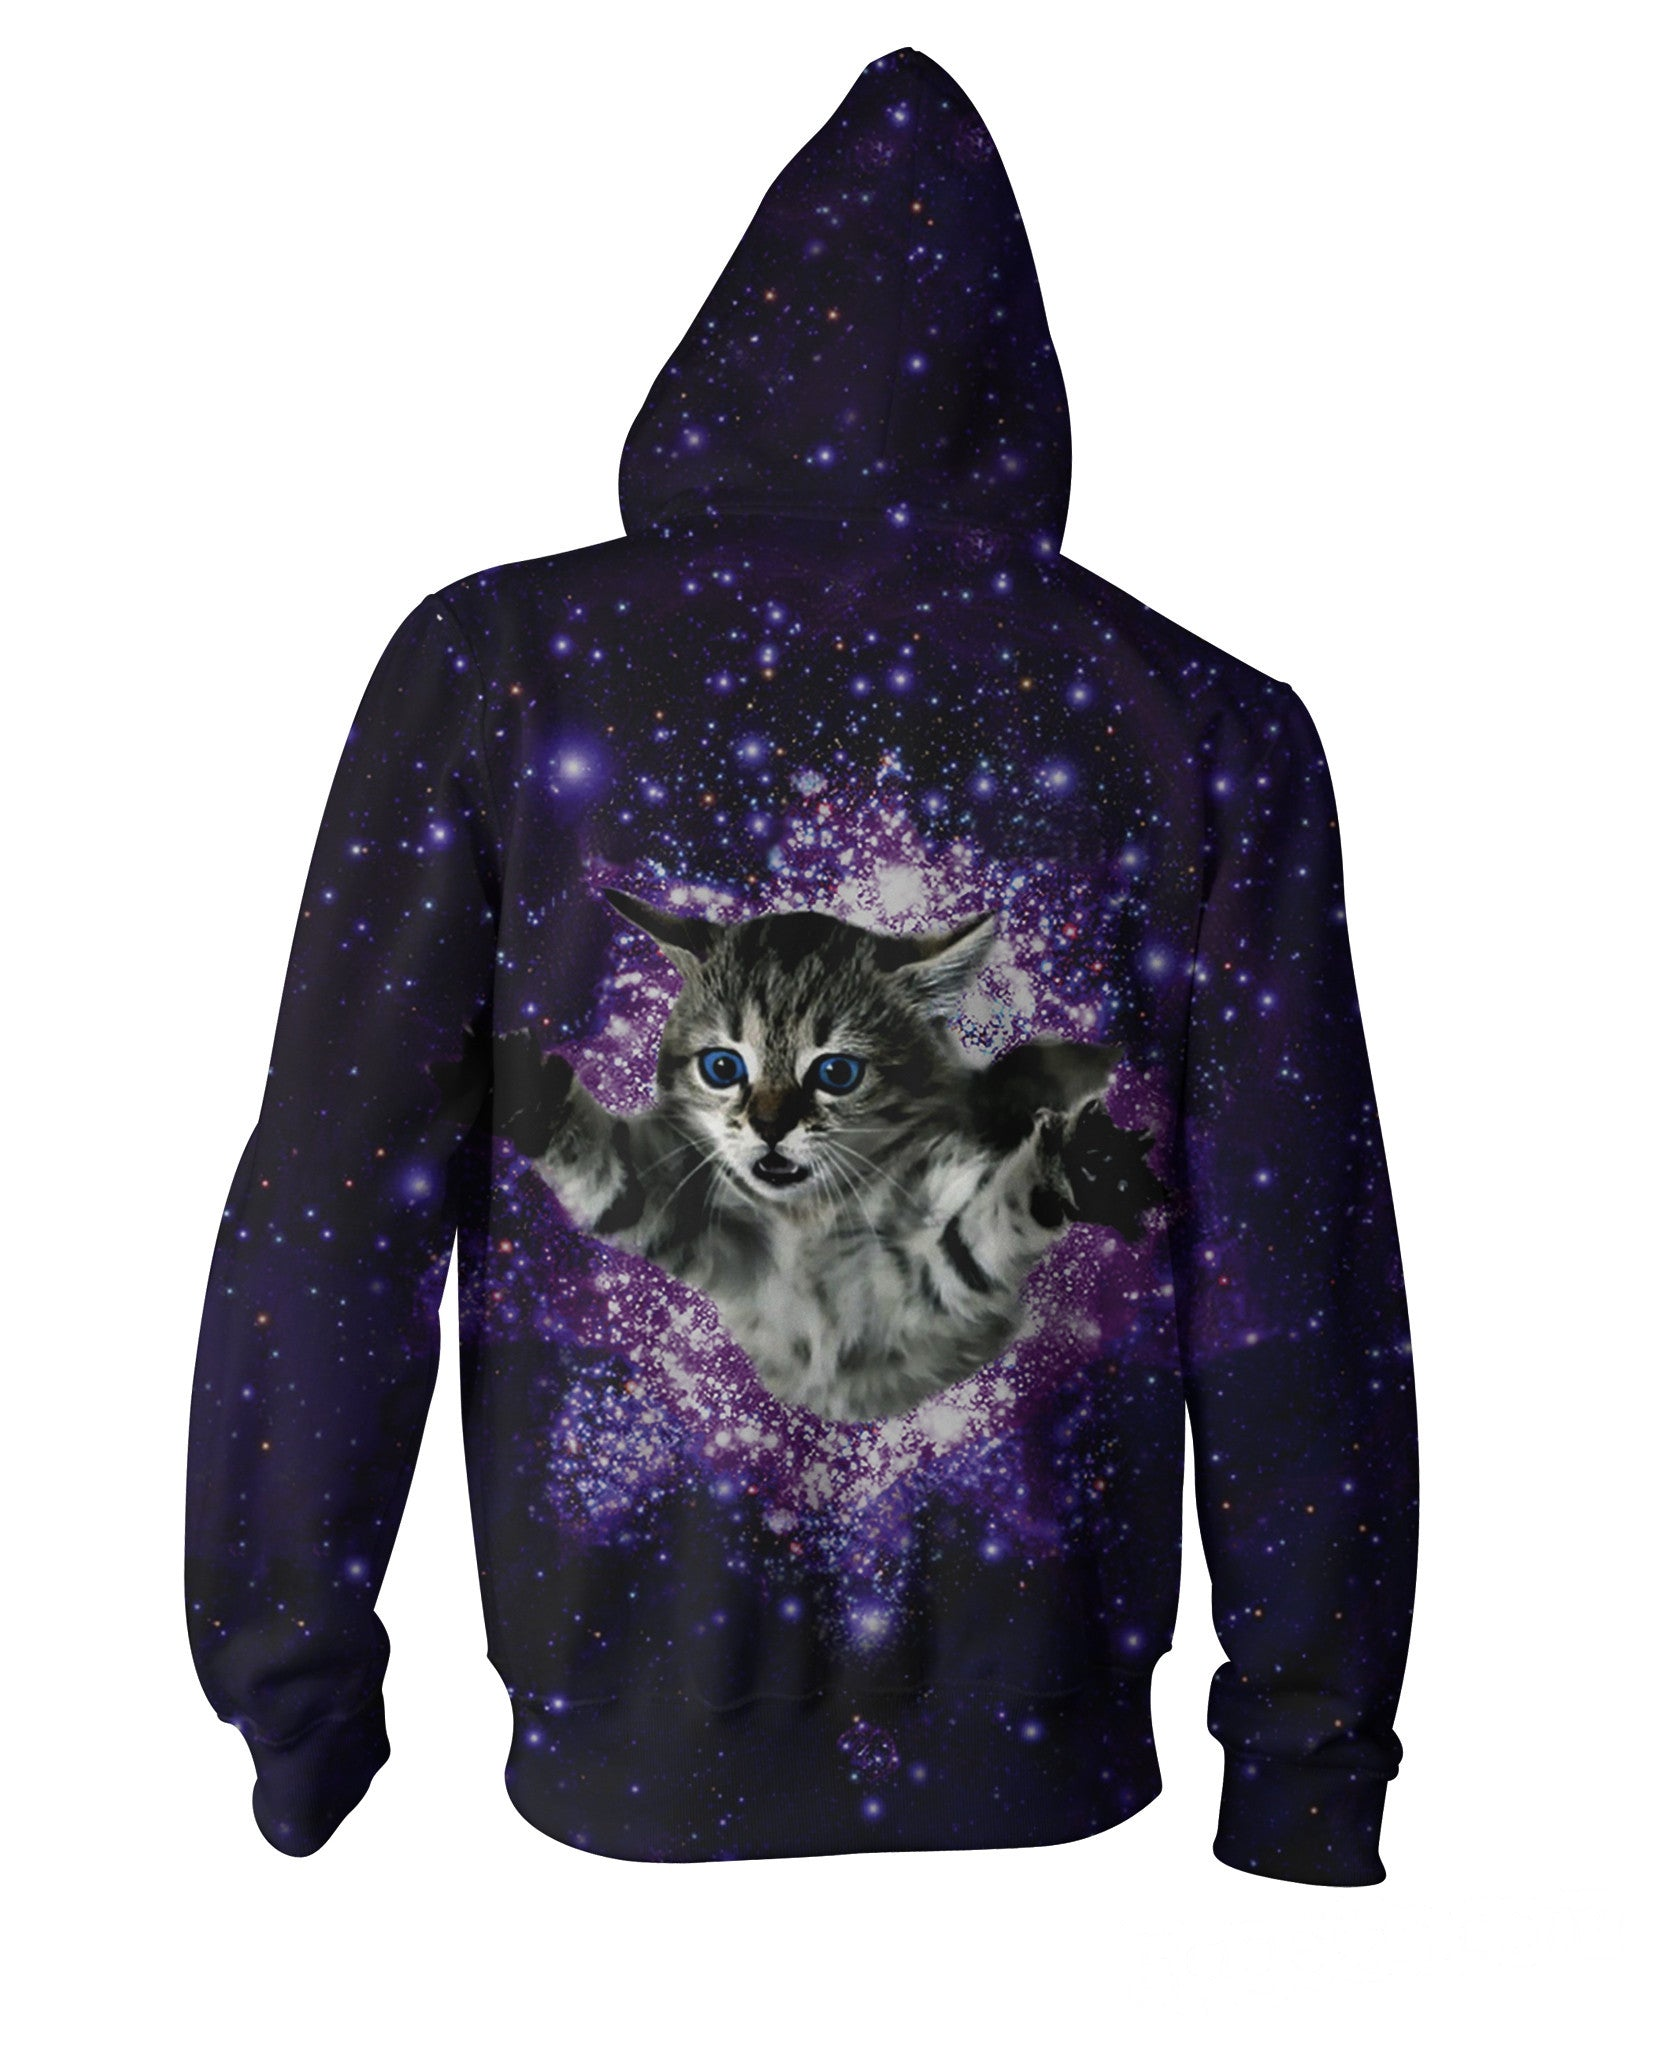 Kitty Glitter Zip-Up Hoodie